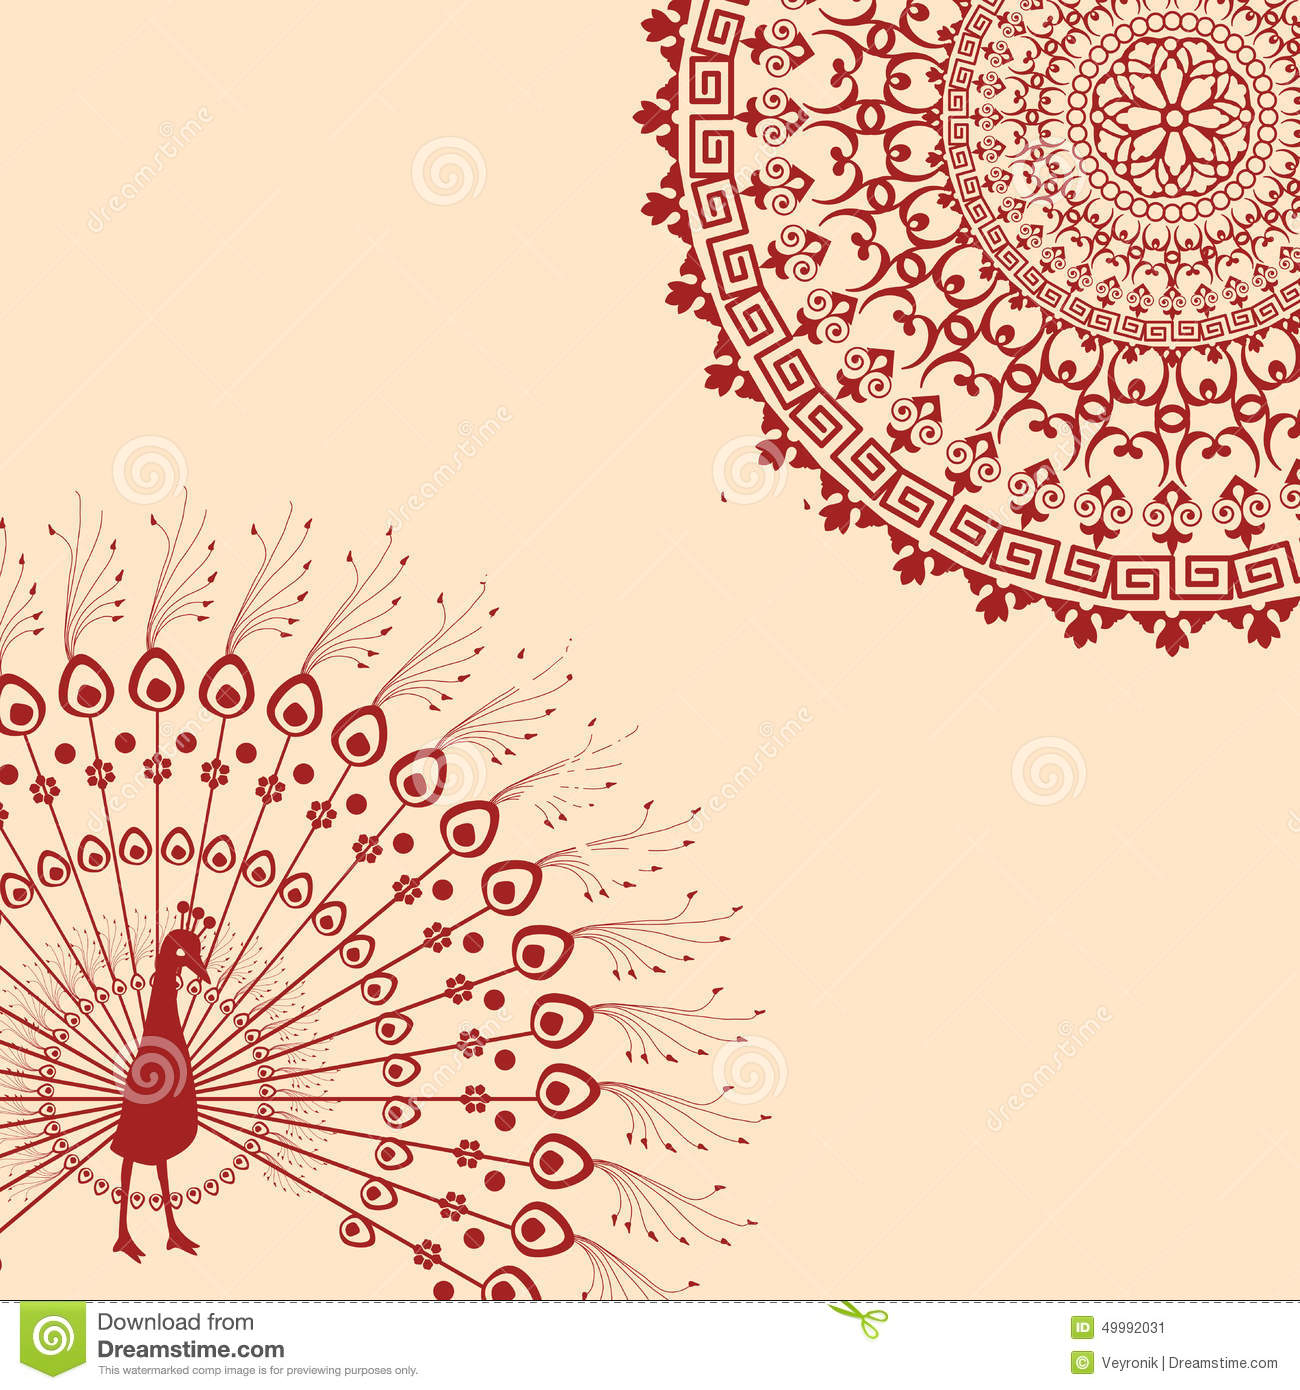 Red And Cream Indian Peacock Mandala Background Stock Vector - Image ...